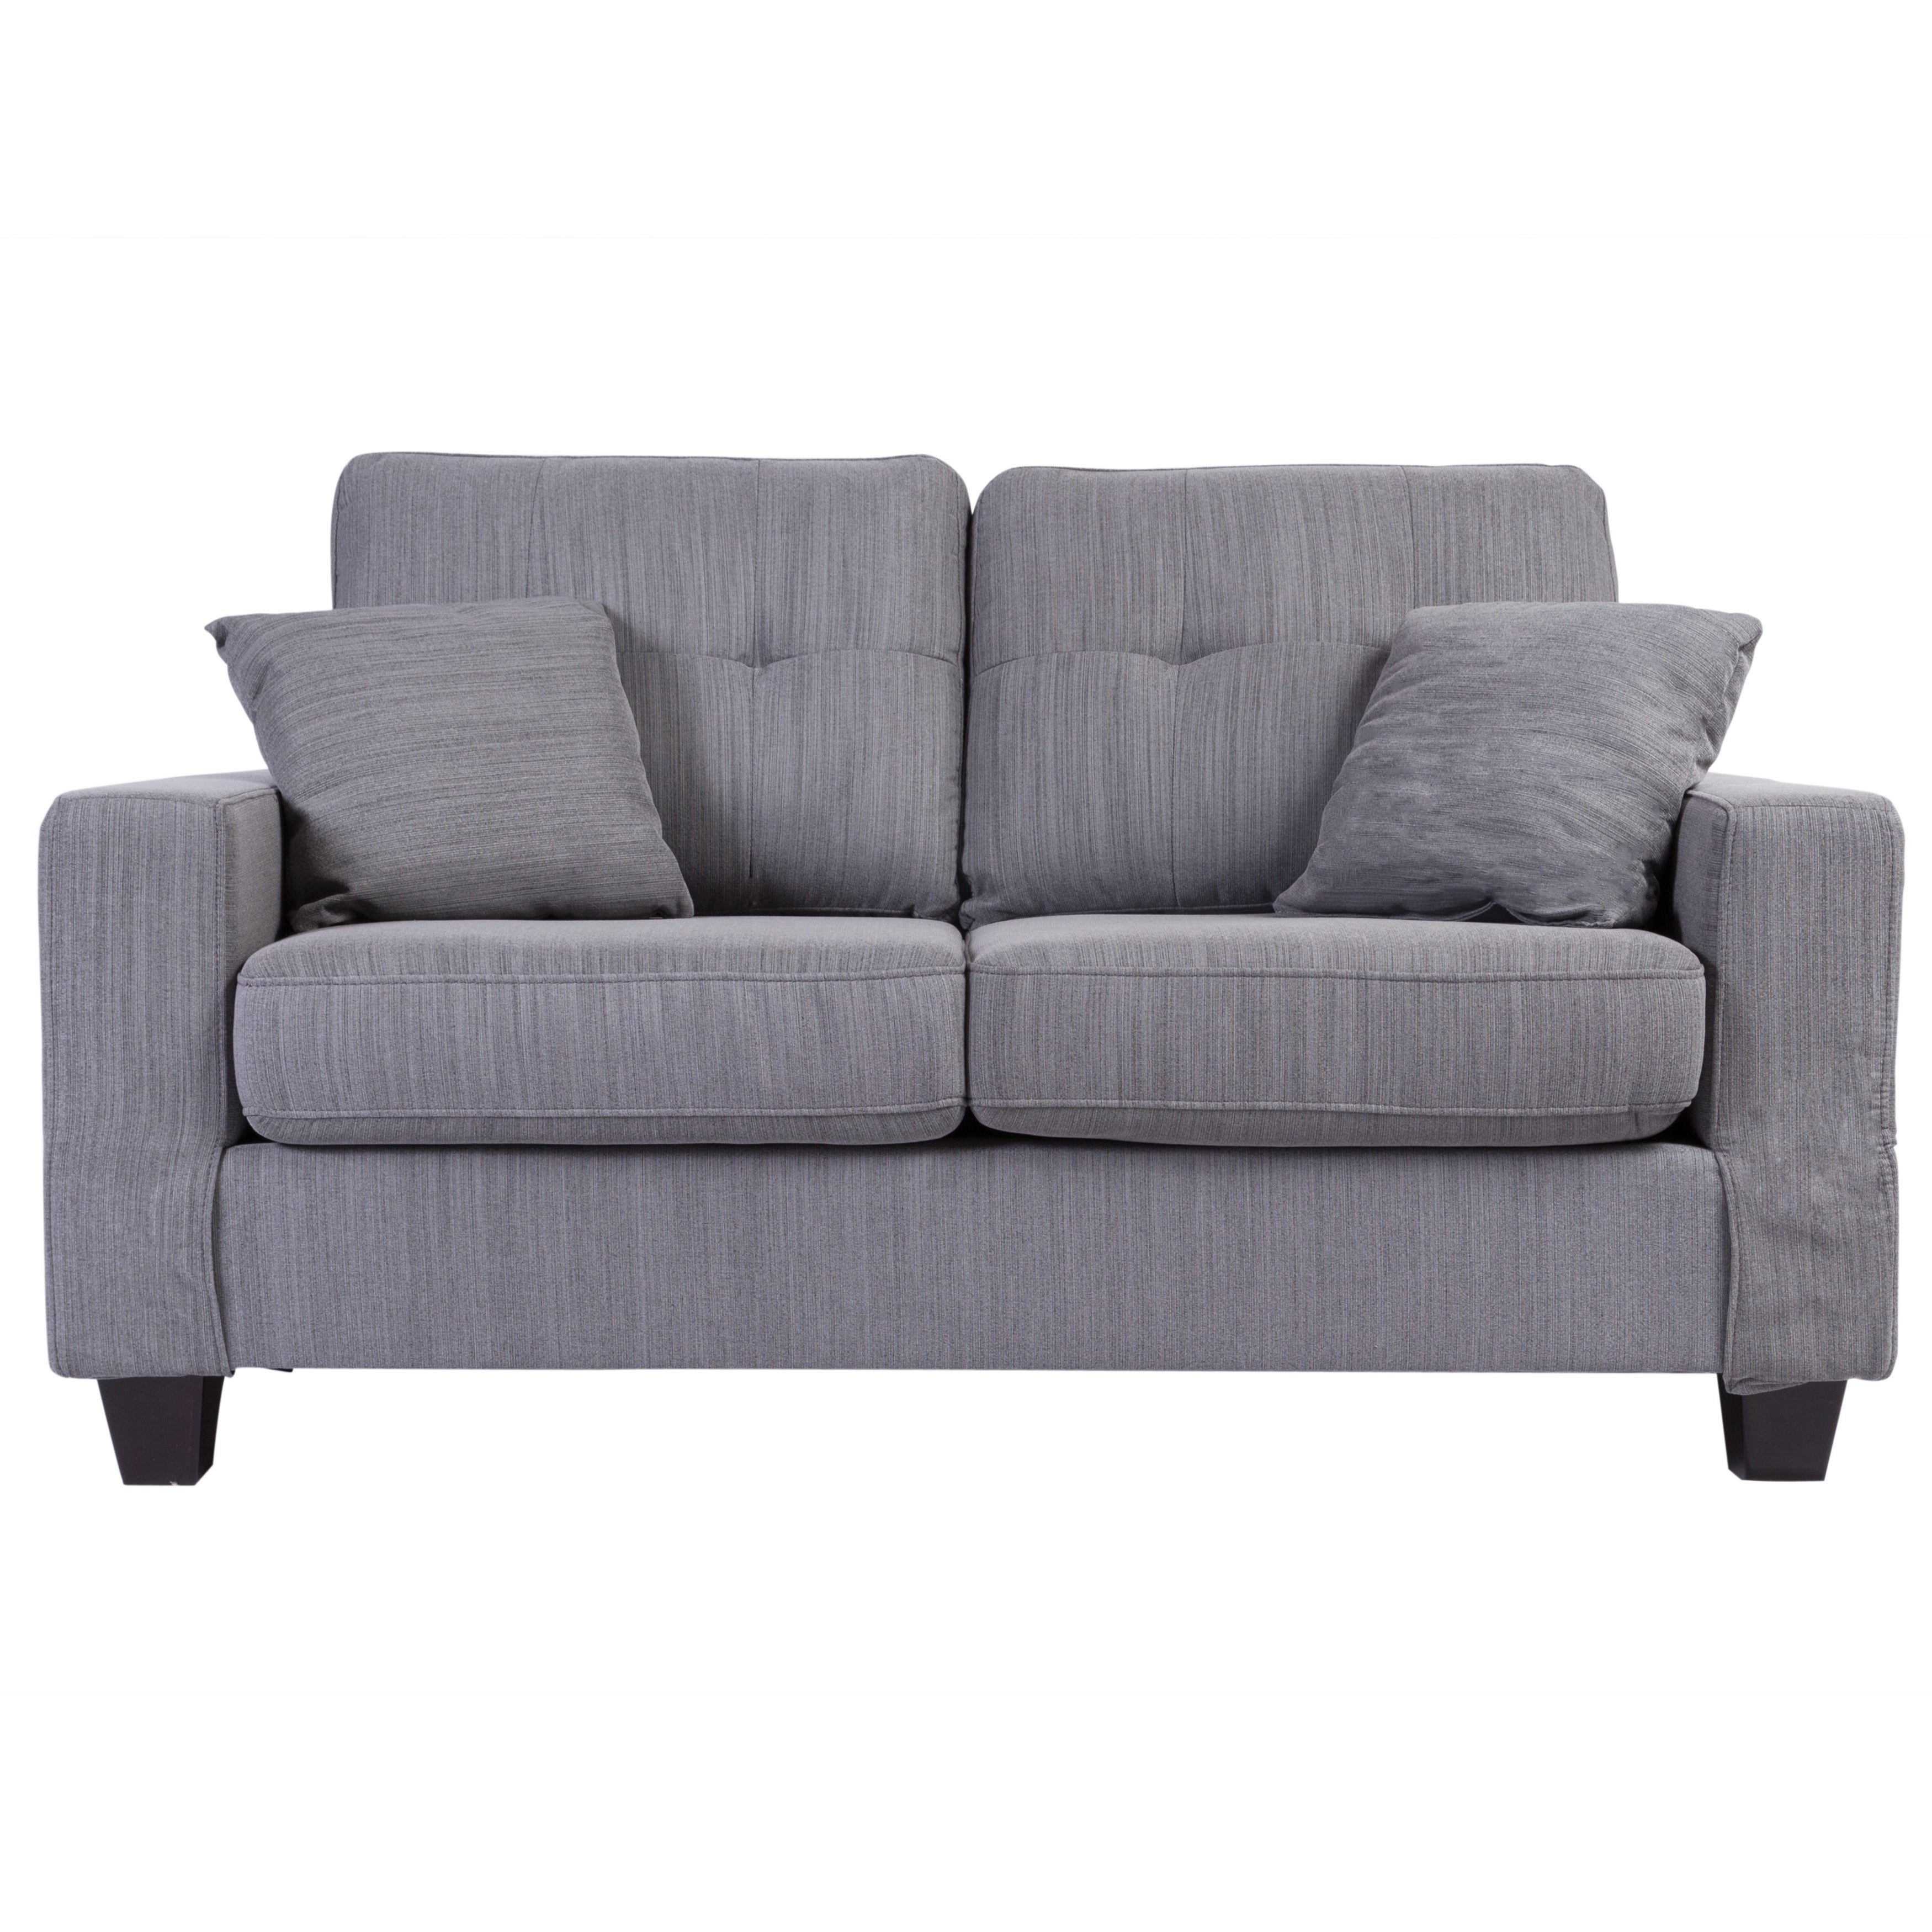 Sitswell Landon Tufted Loveseat Light Gray 63 L X 33 W 37 H On Free Shipping Today 22538310